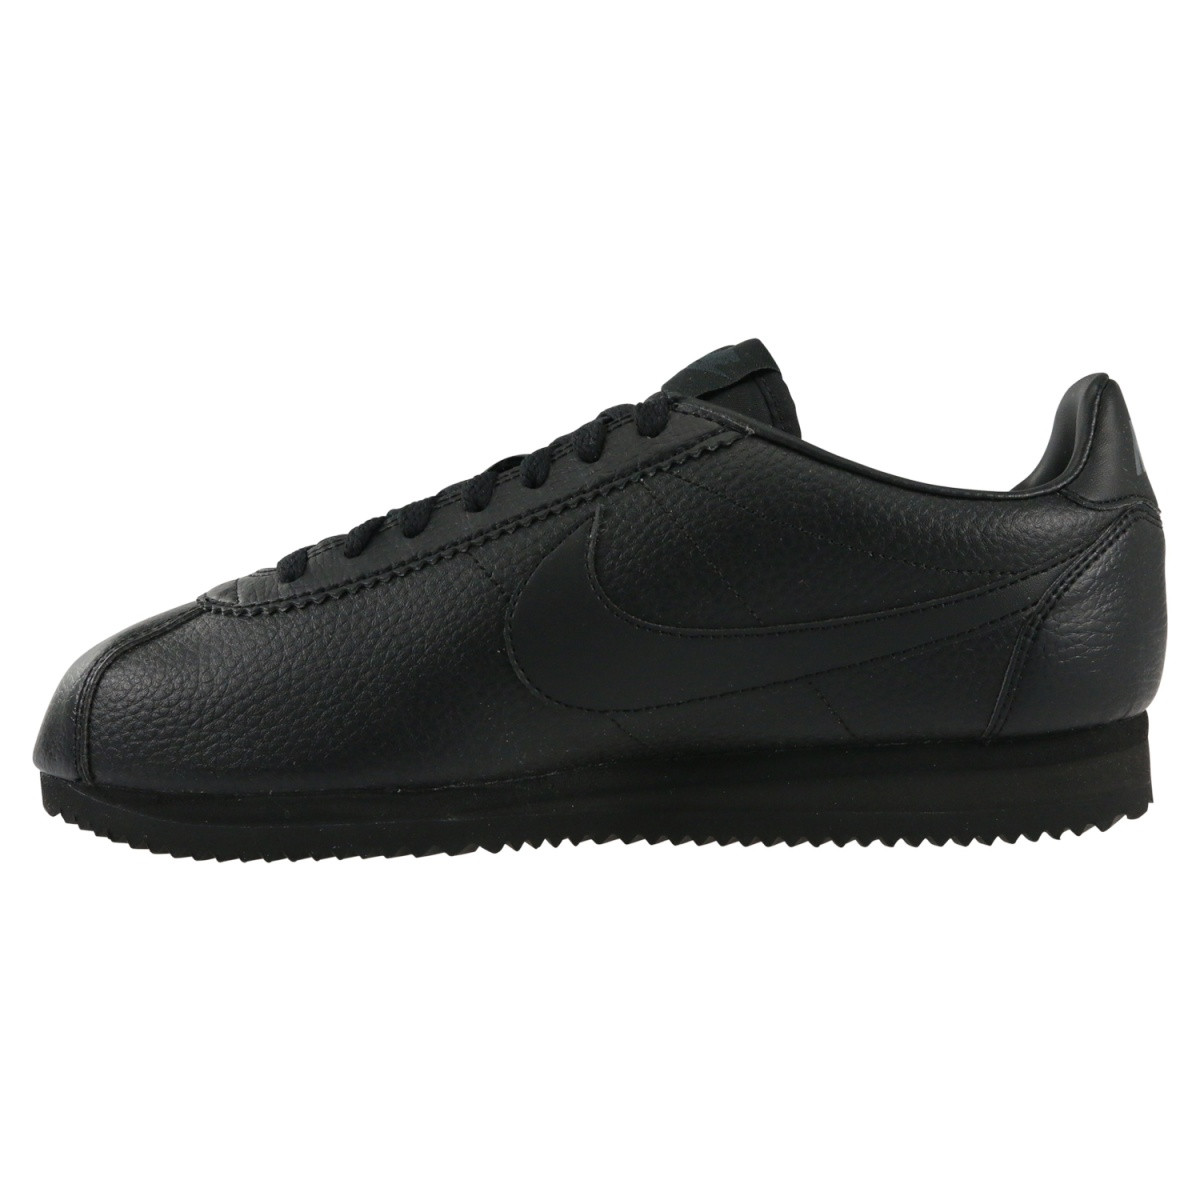 official photos df491 6ea0f Basket Nike Classic Cortez Leather - Ref. 749571-002. Loading zoom